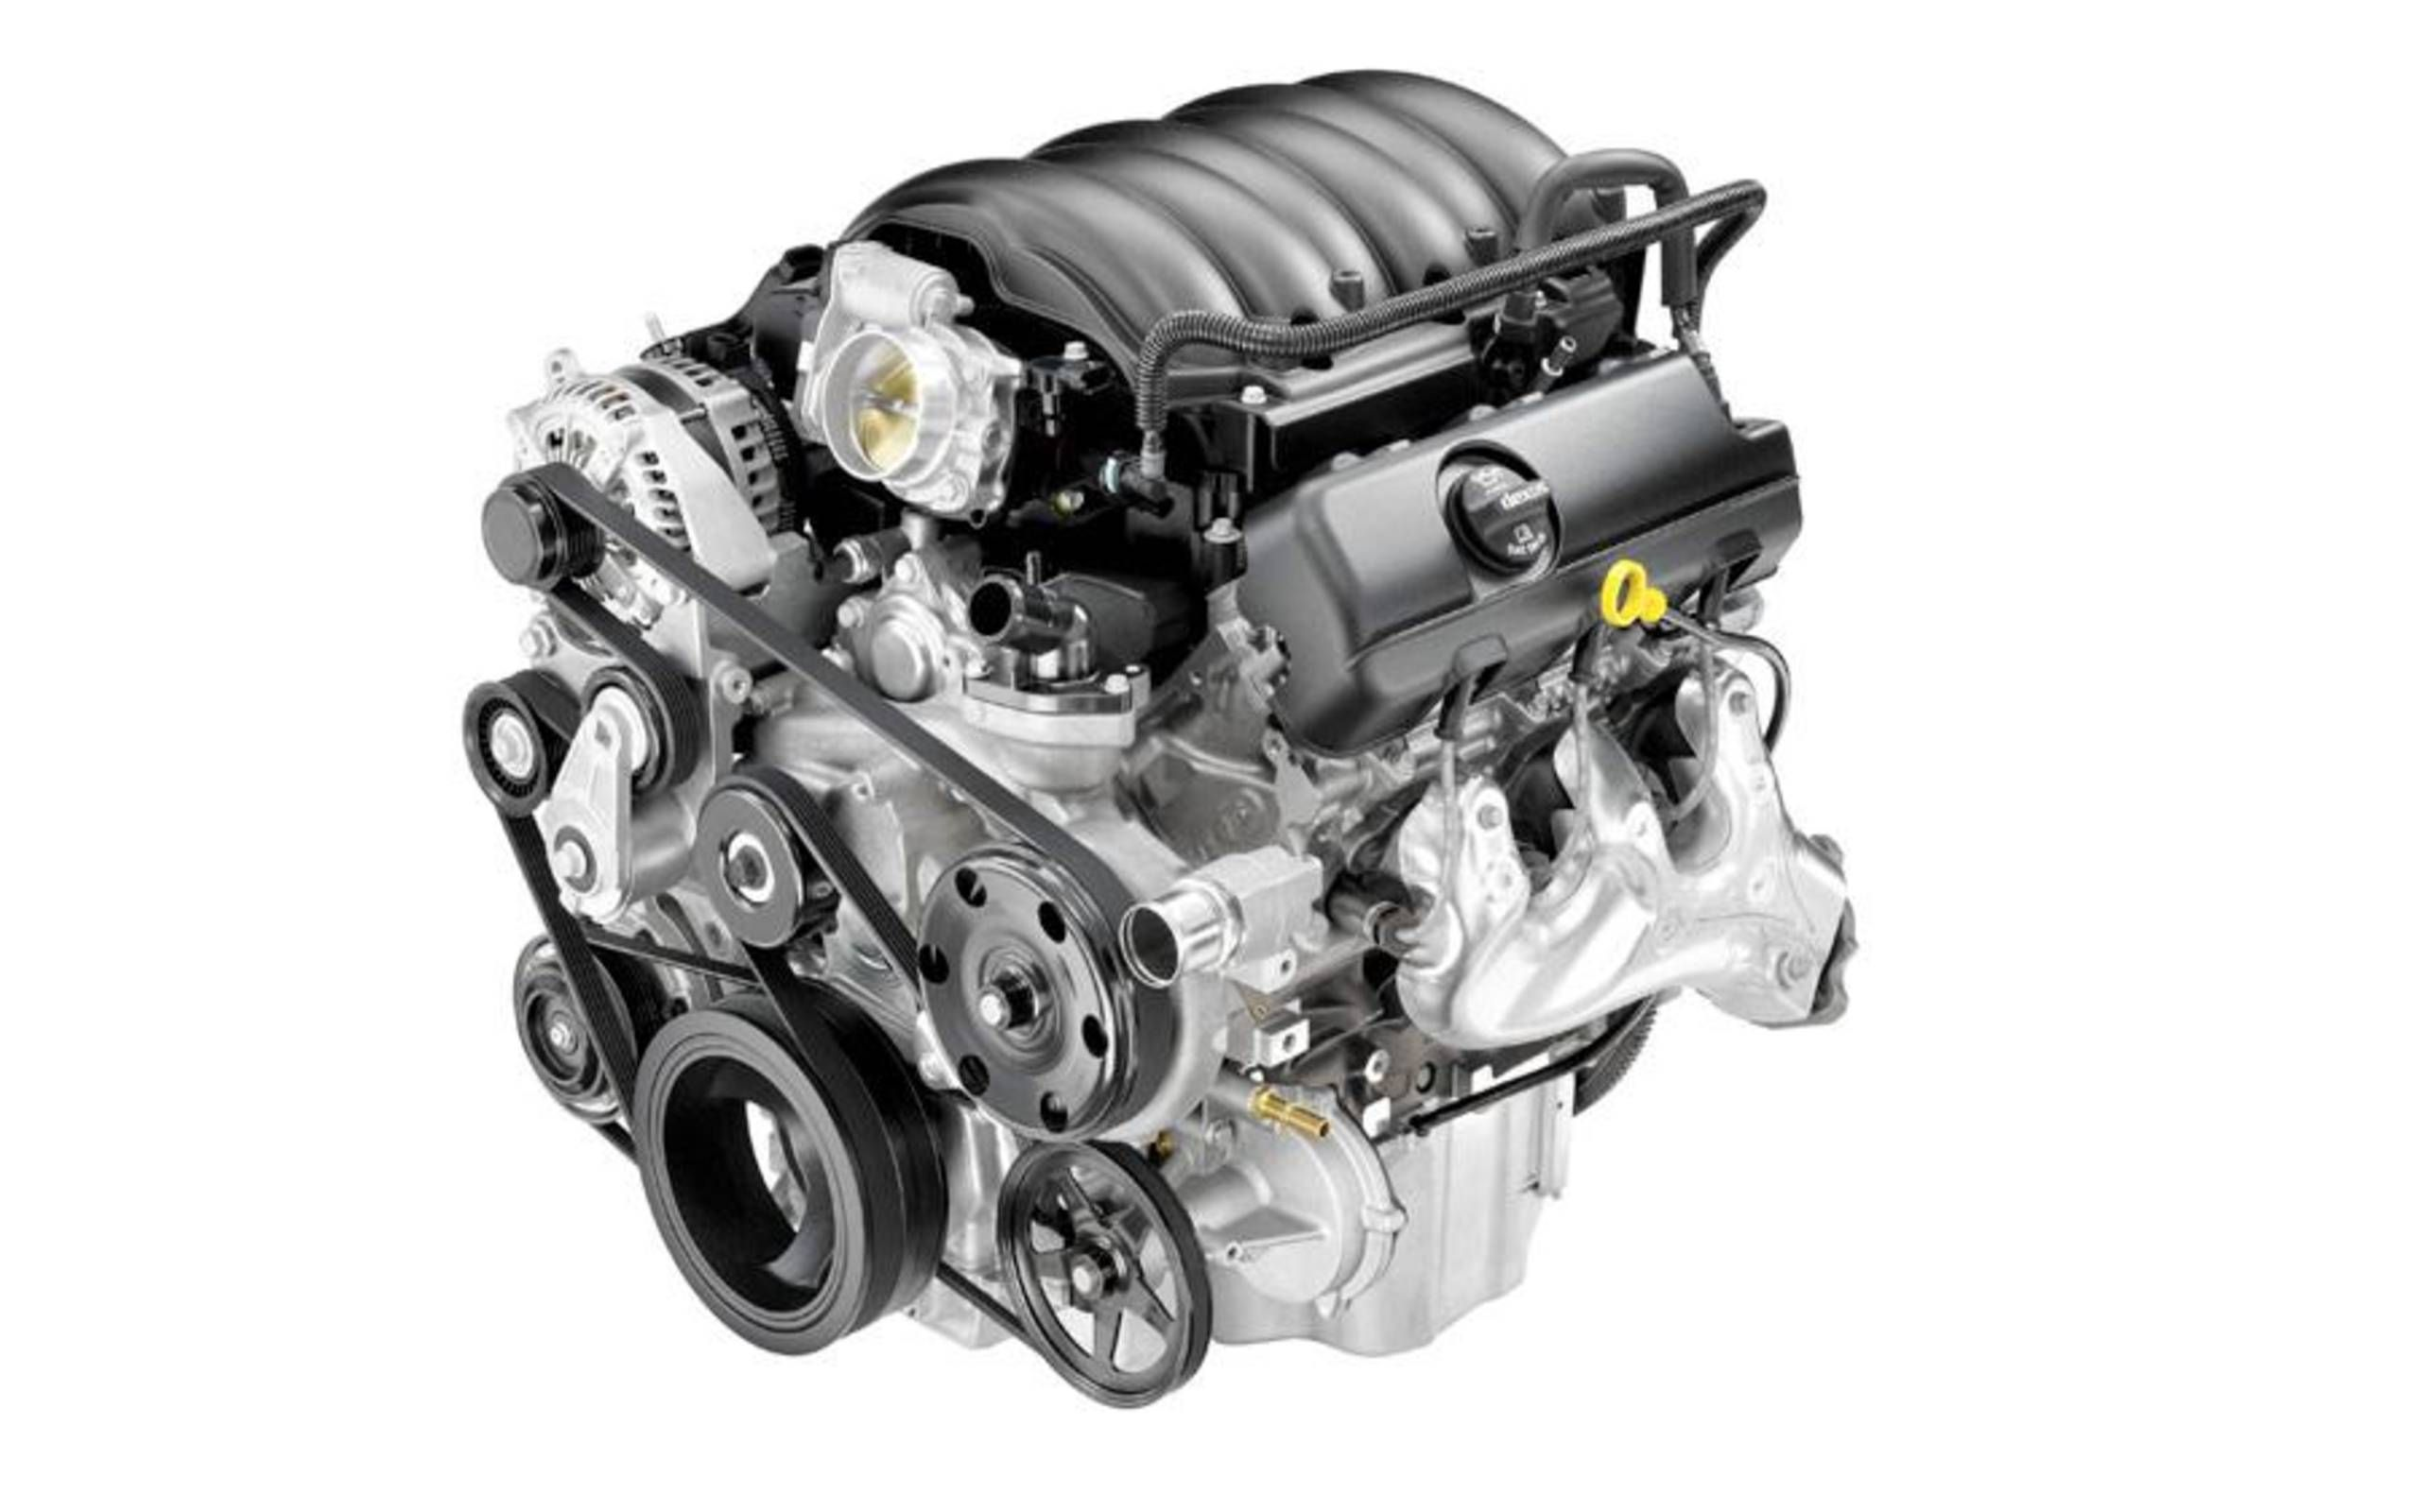 GM reveals new 4.3-liter V6 EcoTec3 truck engine specs and detailsAutoweek